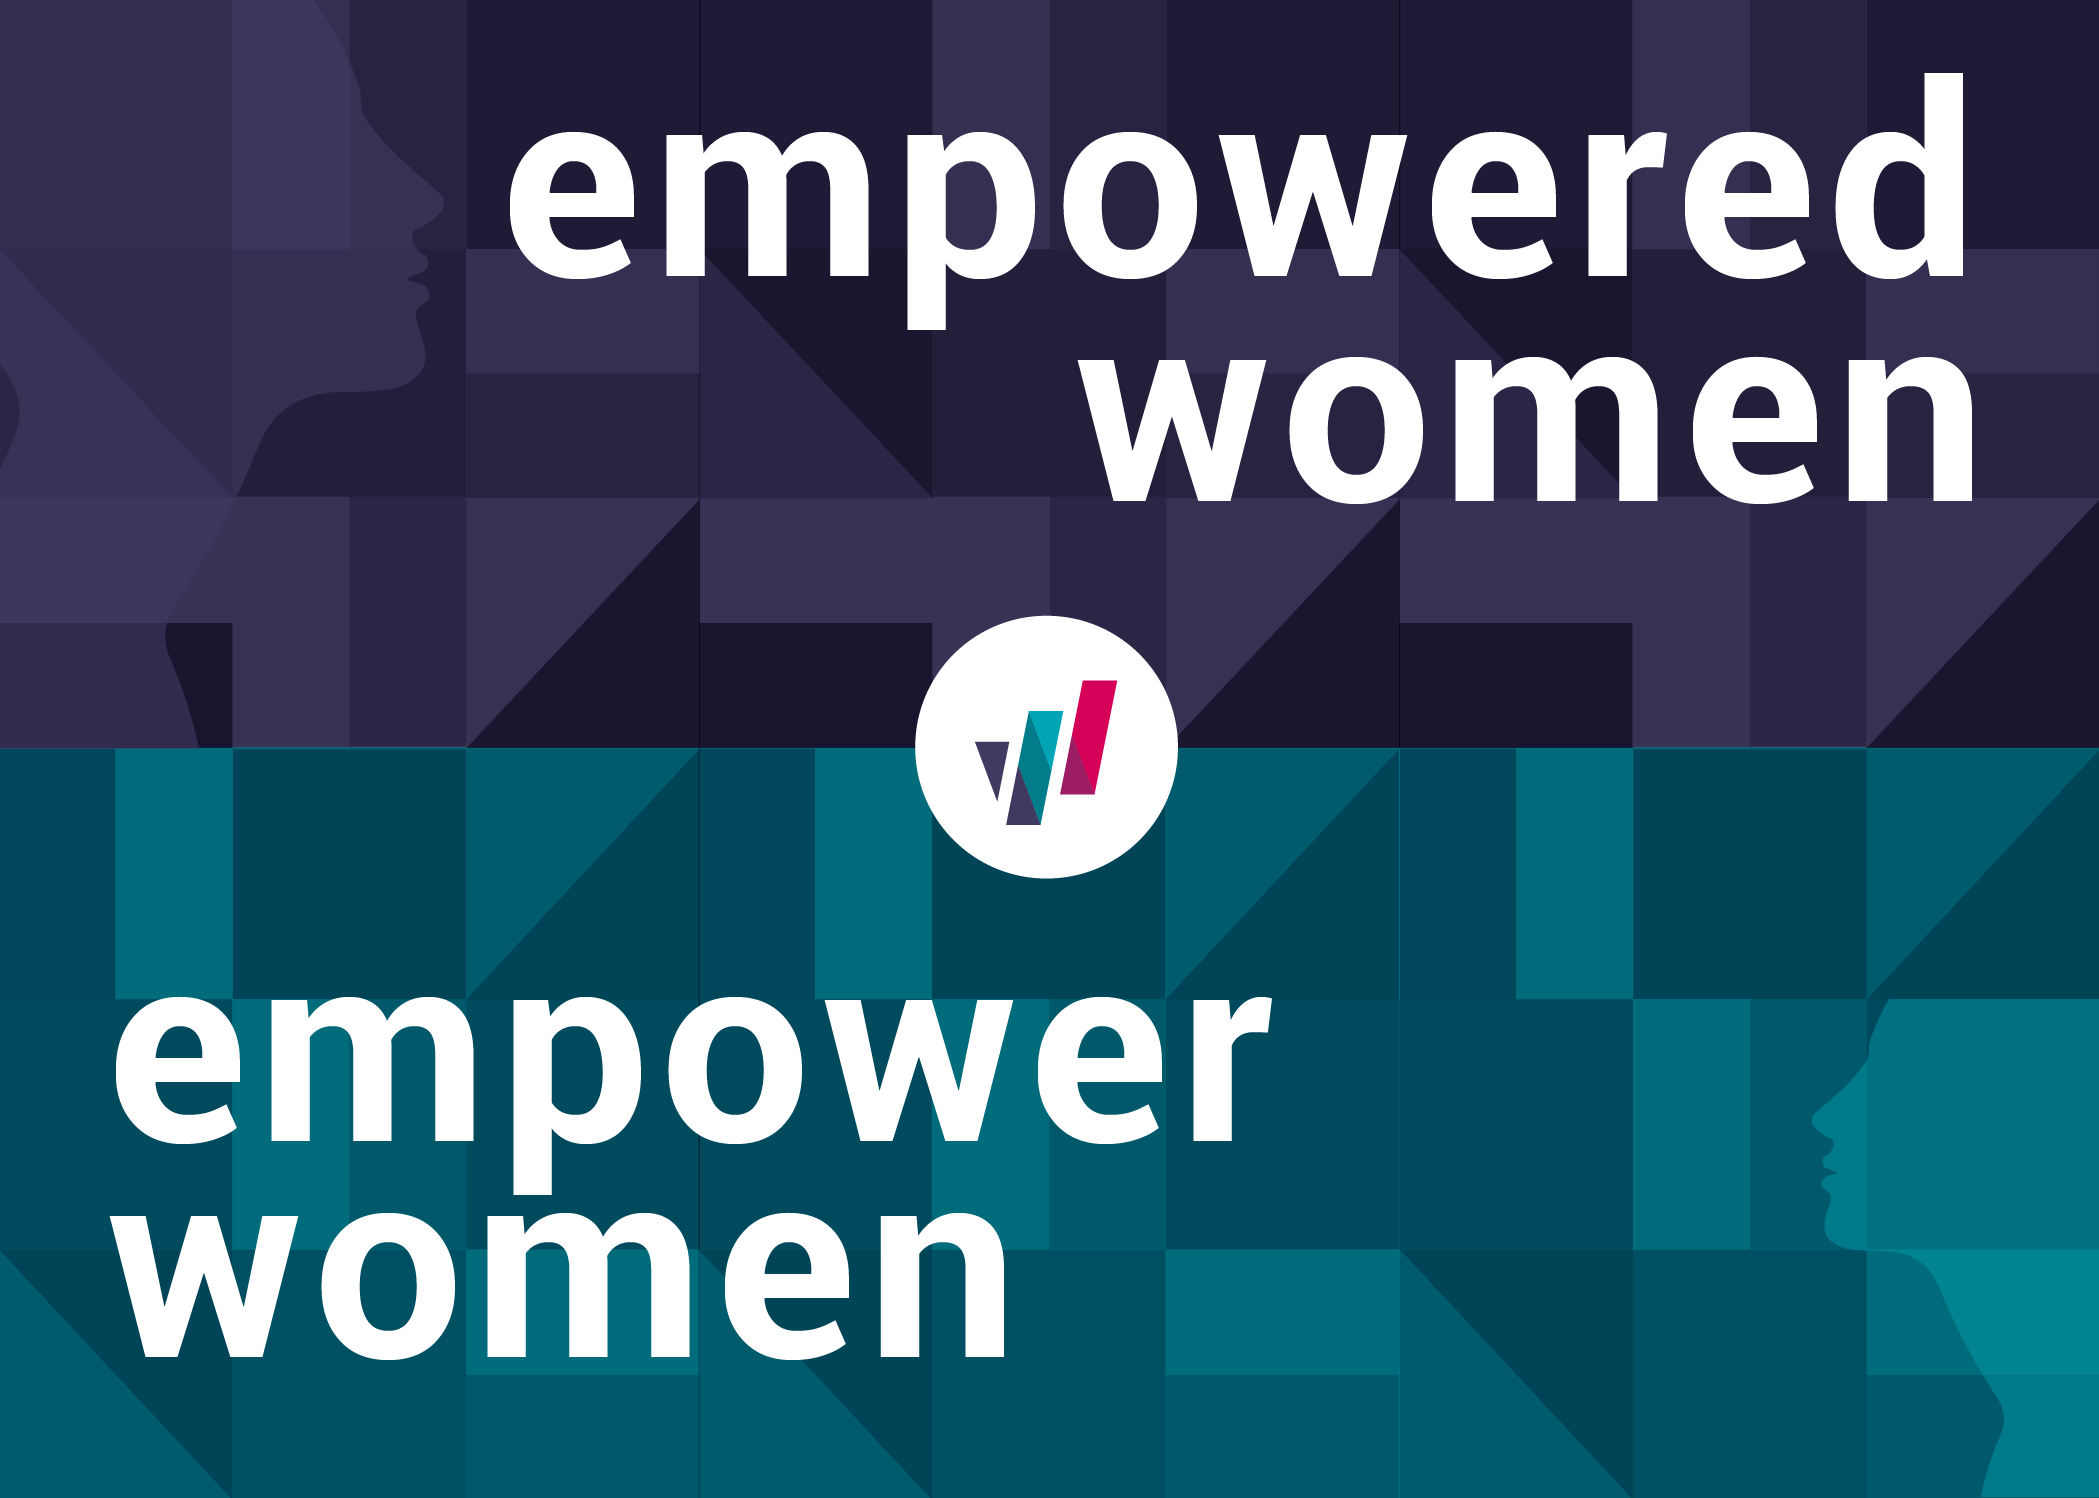 Empowered women empower women 2019 Annual Appeal graphic